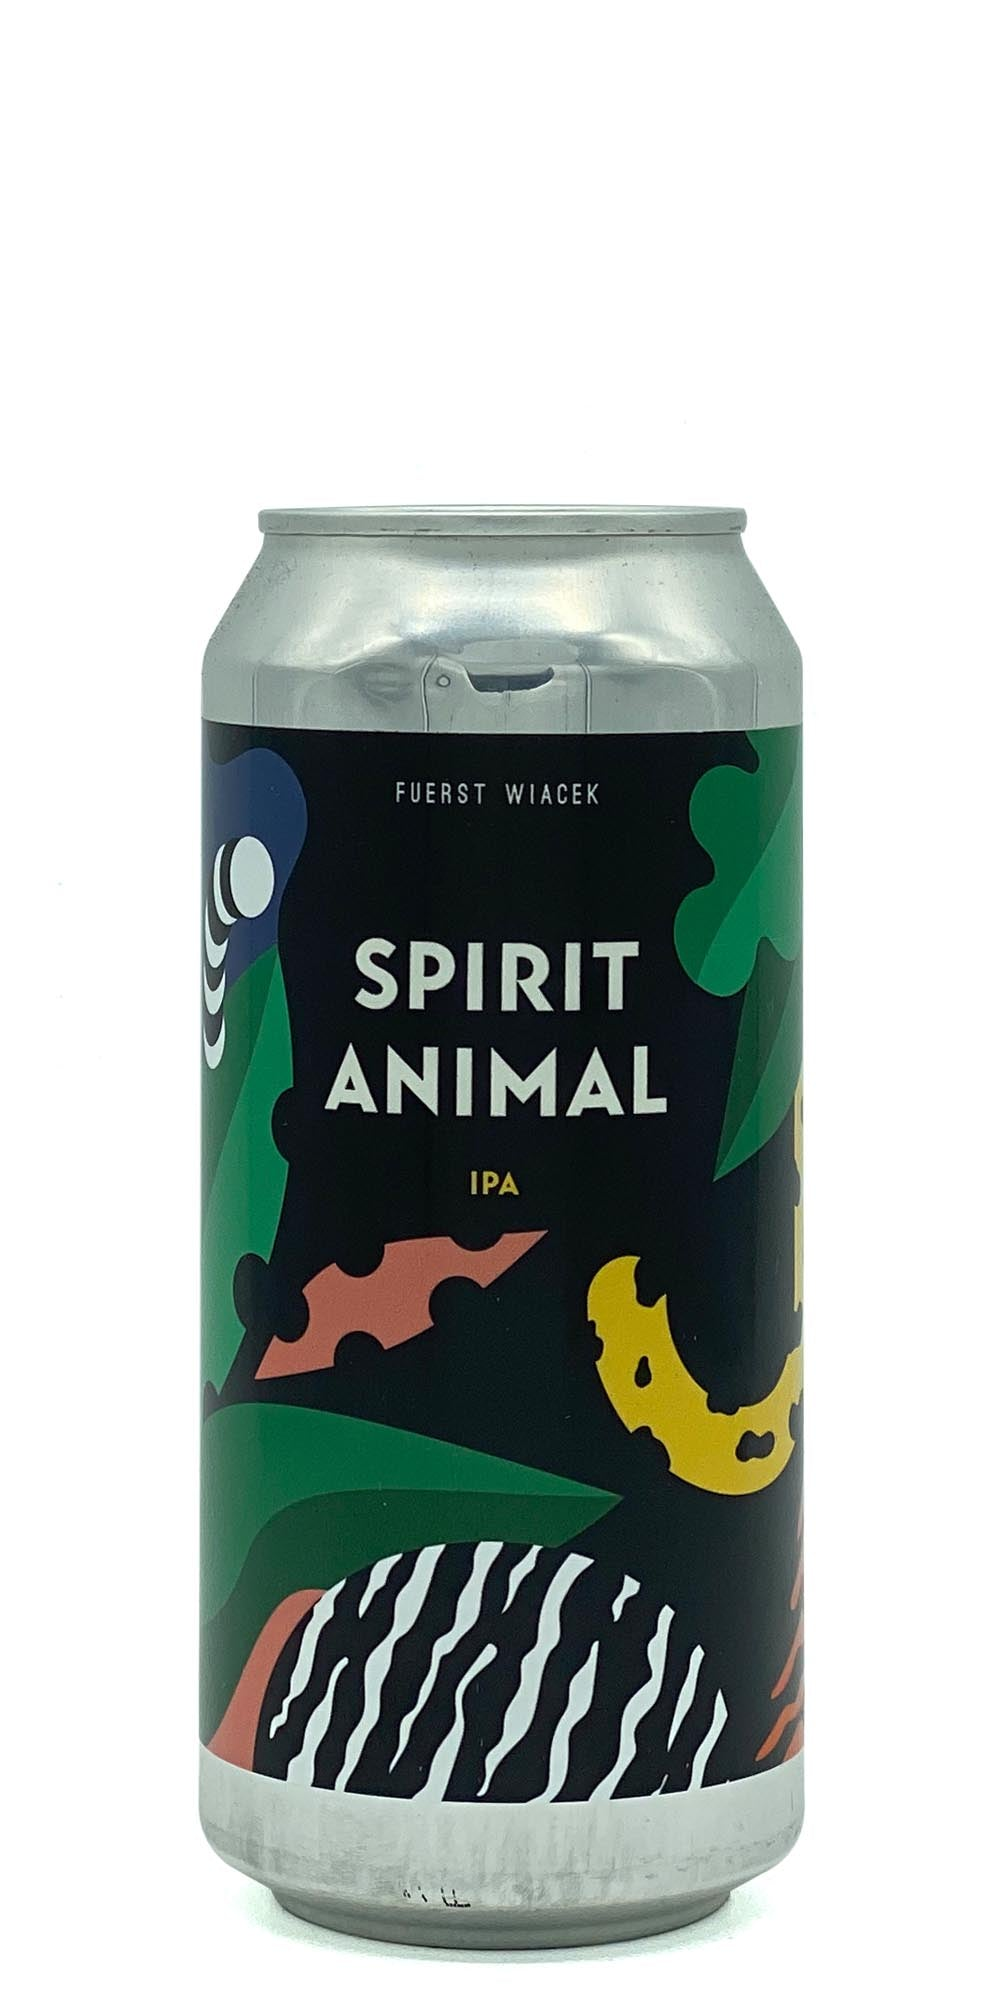 Fuerst Wiacek - Spirit Animal - Drikbeer - Order Craft Beer Online